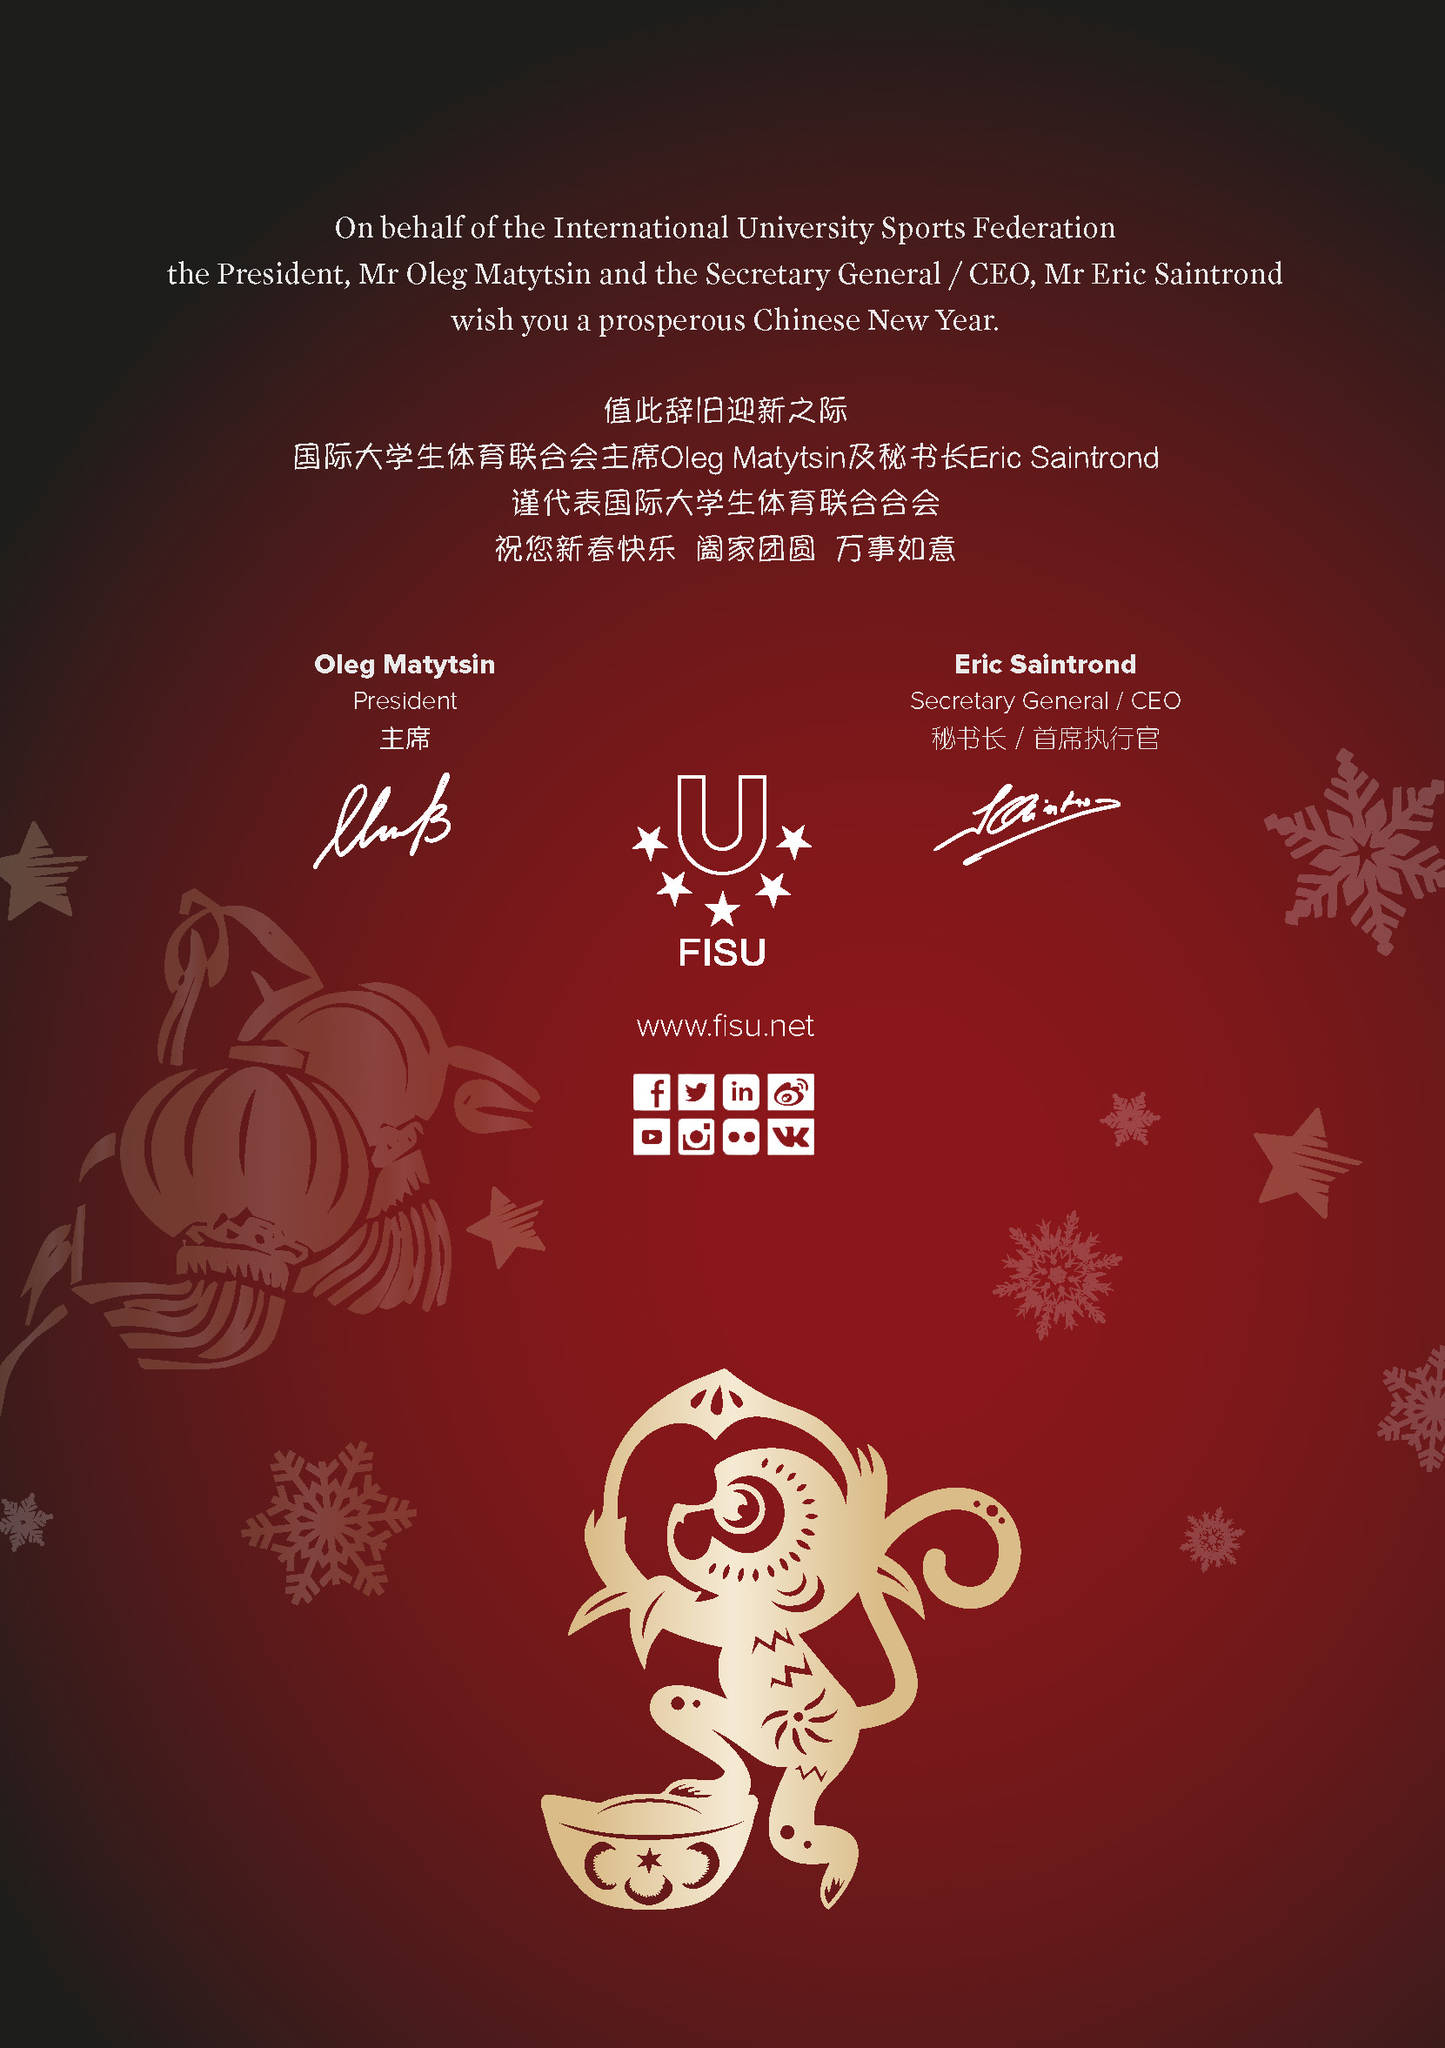 Fisu Greetings For The Chinese New Year